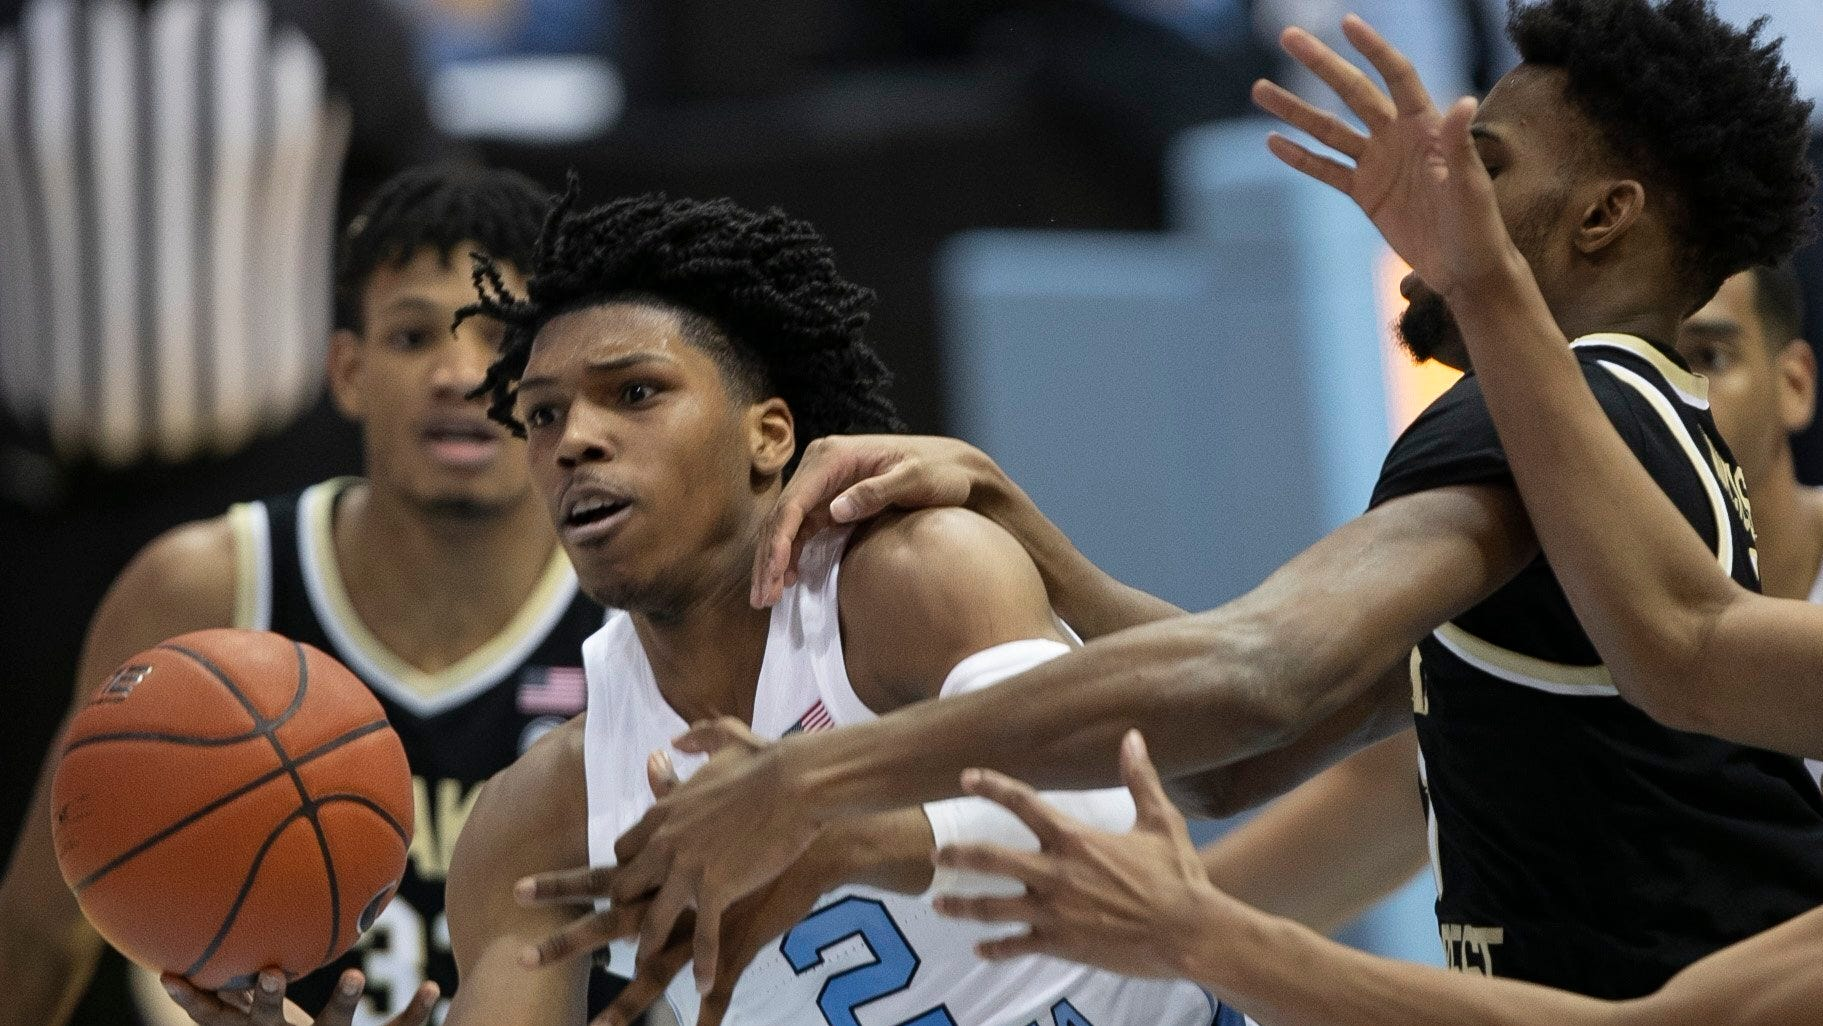 UNC's Caleb Love tries meditation to soothe struggles, bring success into focus